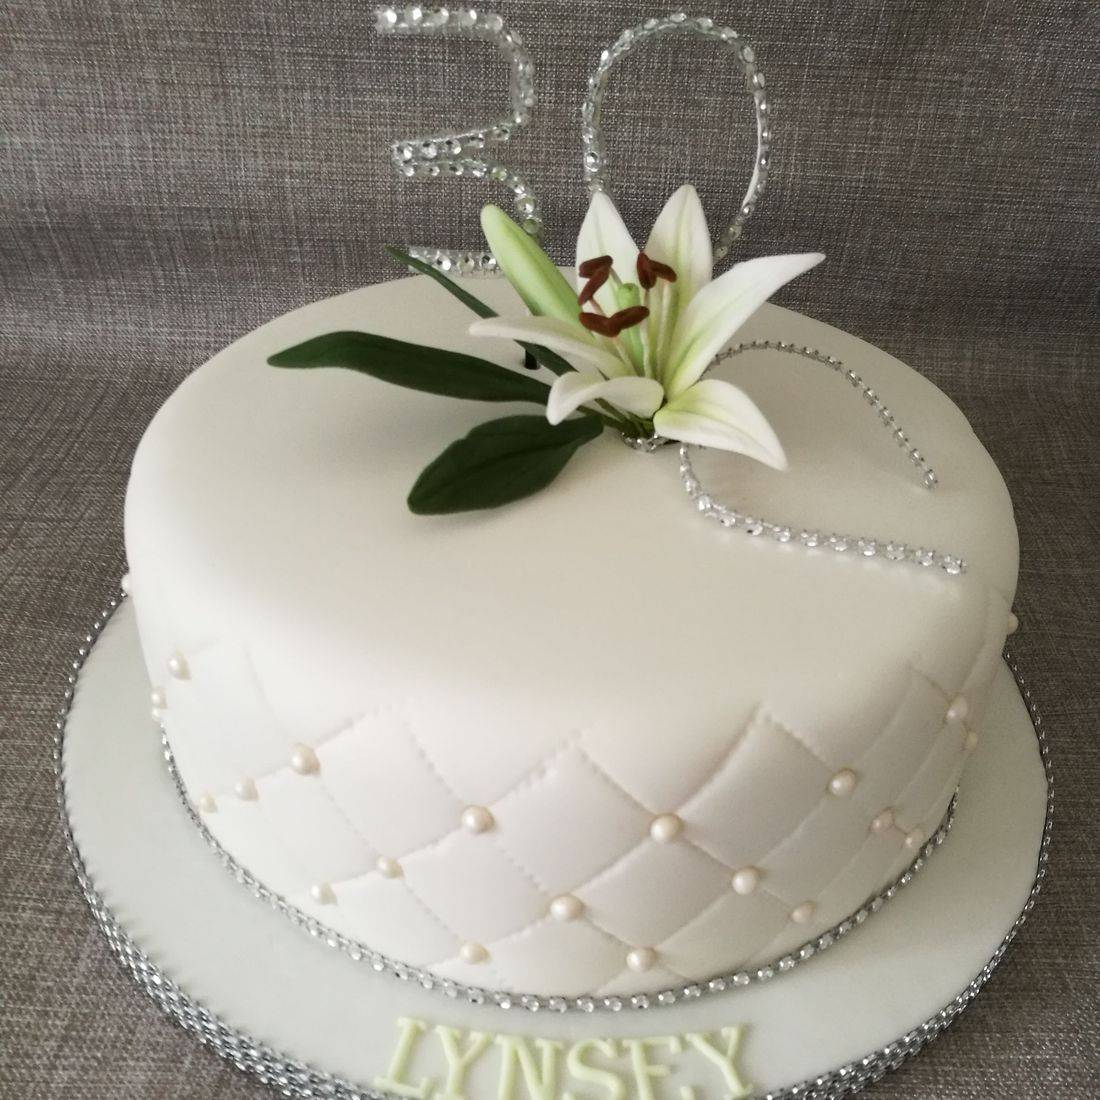 A Rosey 70th Birthday Cake